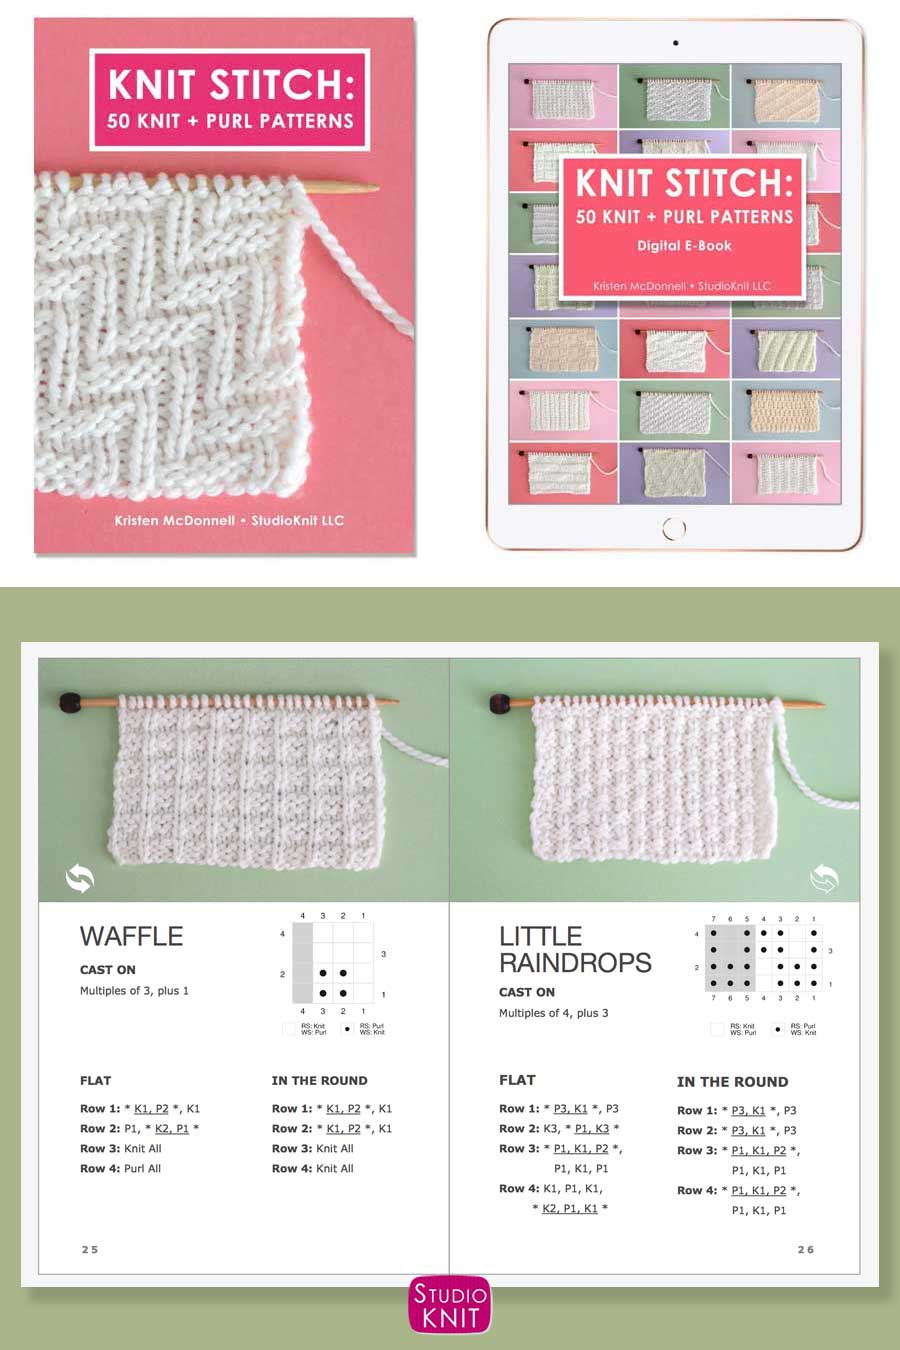 Knit Stitch Pattern Book with Waffle and Little Raindrops Stitch Patterns by Studio Knit